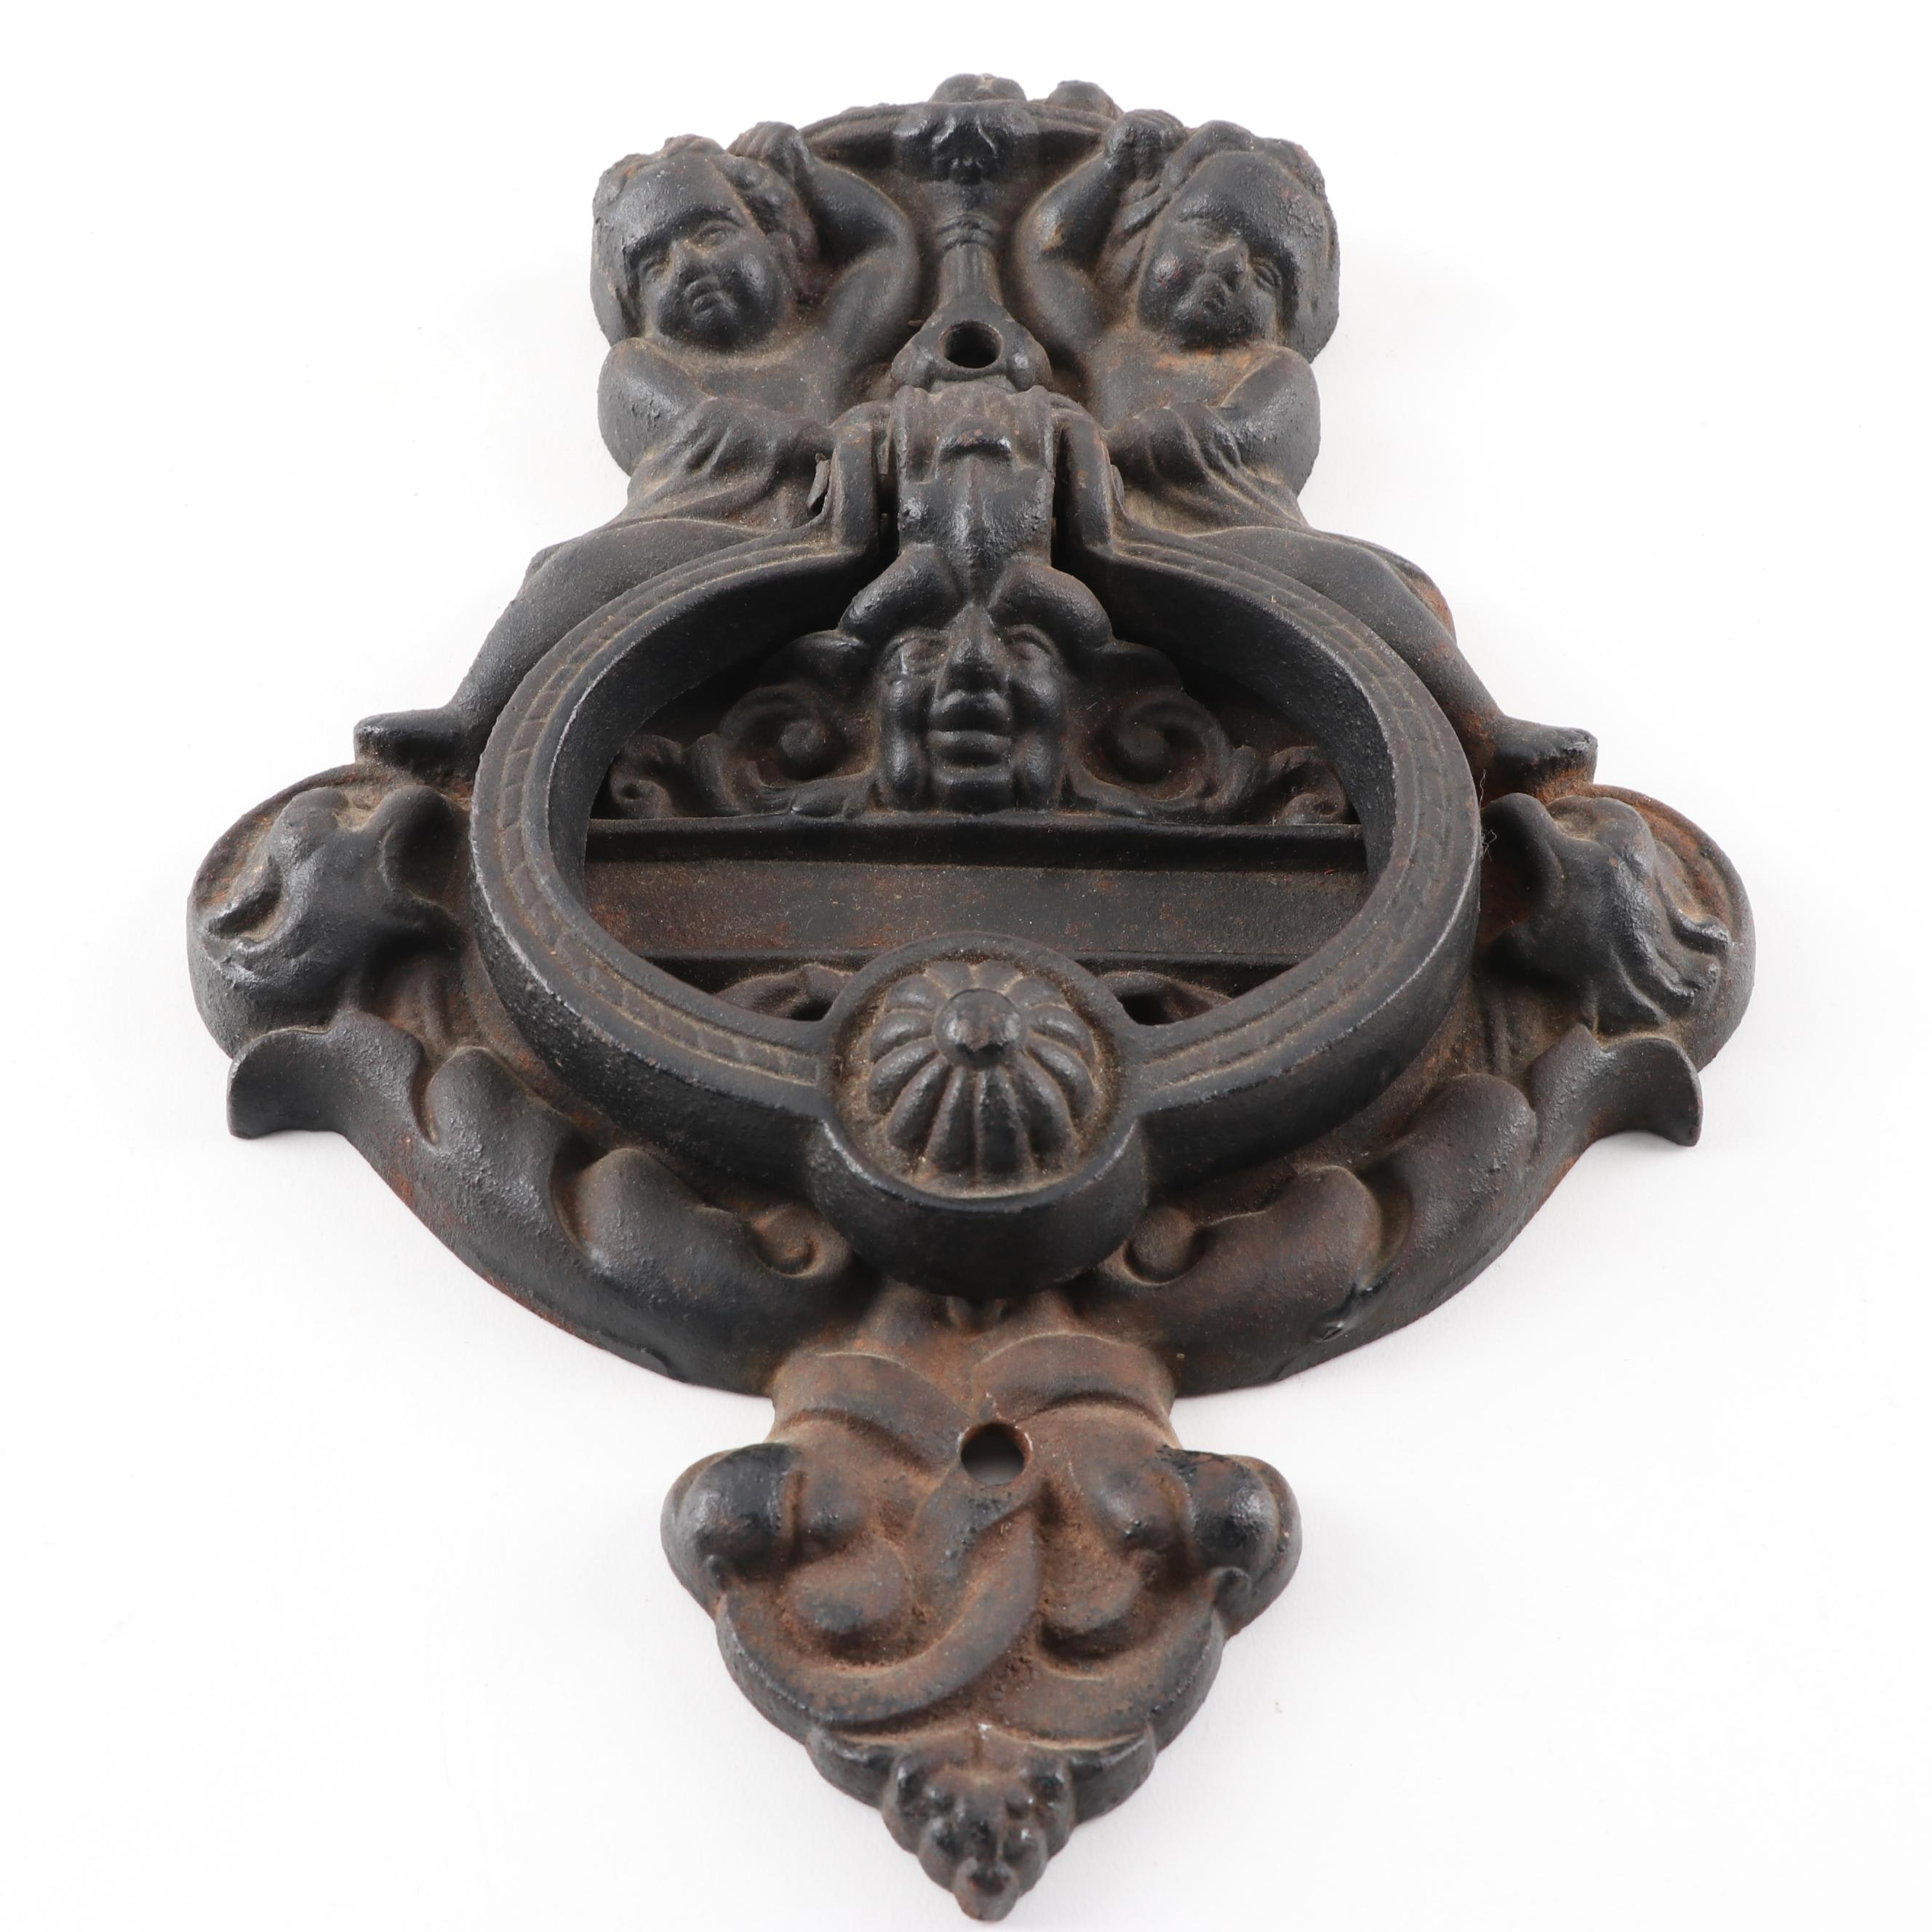 Italian Renaissance Style Cast Iron Door Knocker, 20th Century